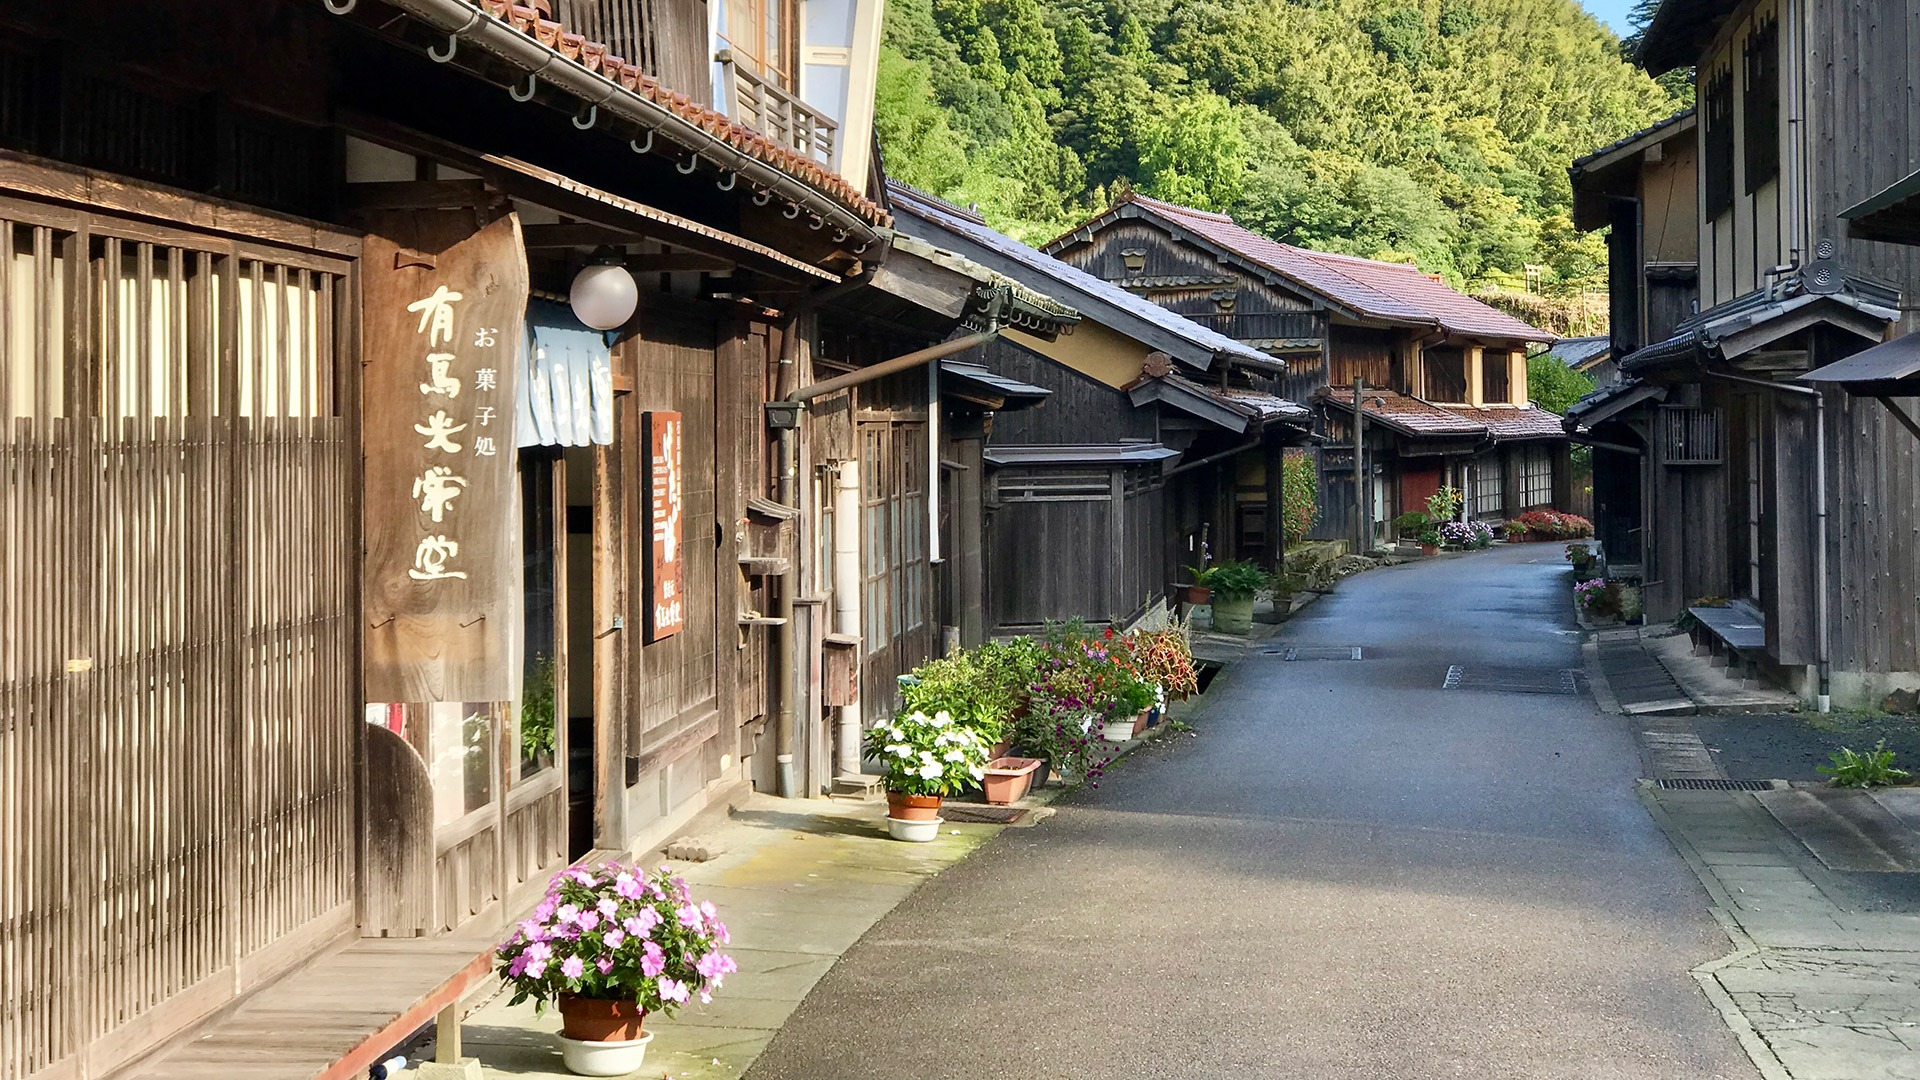 Remarkably restored architecture in the village of Omori, Japan